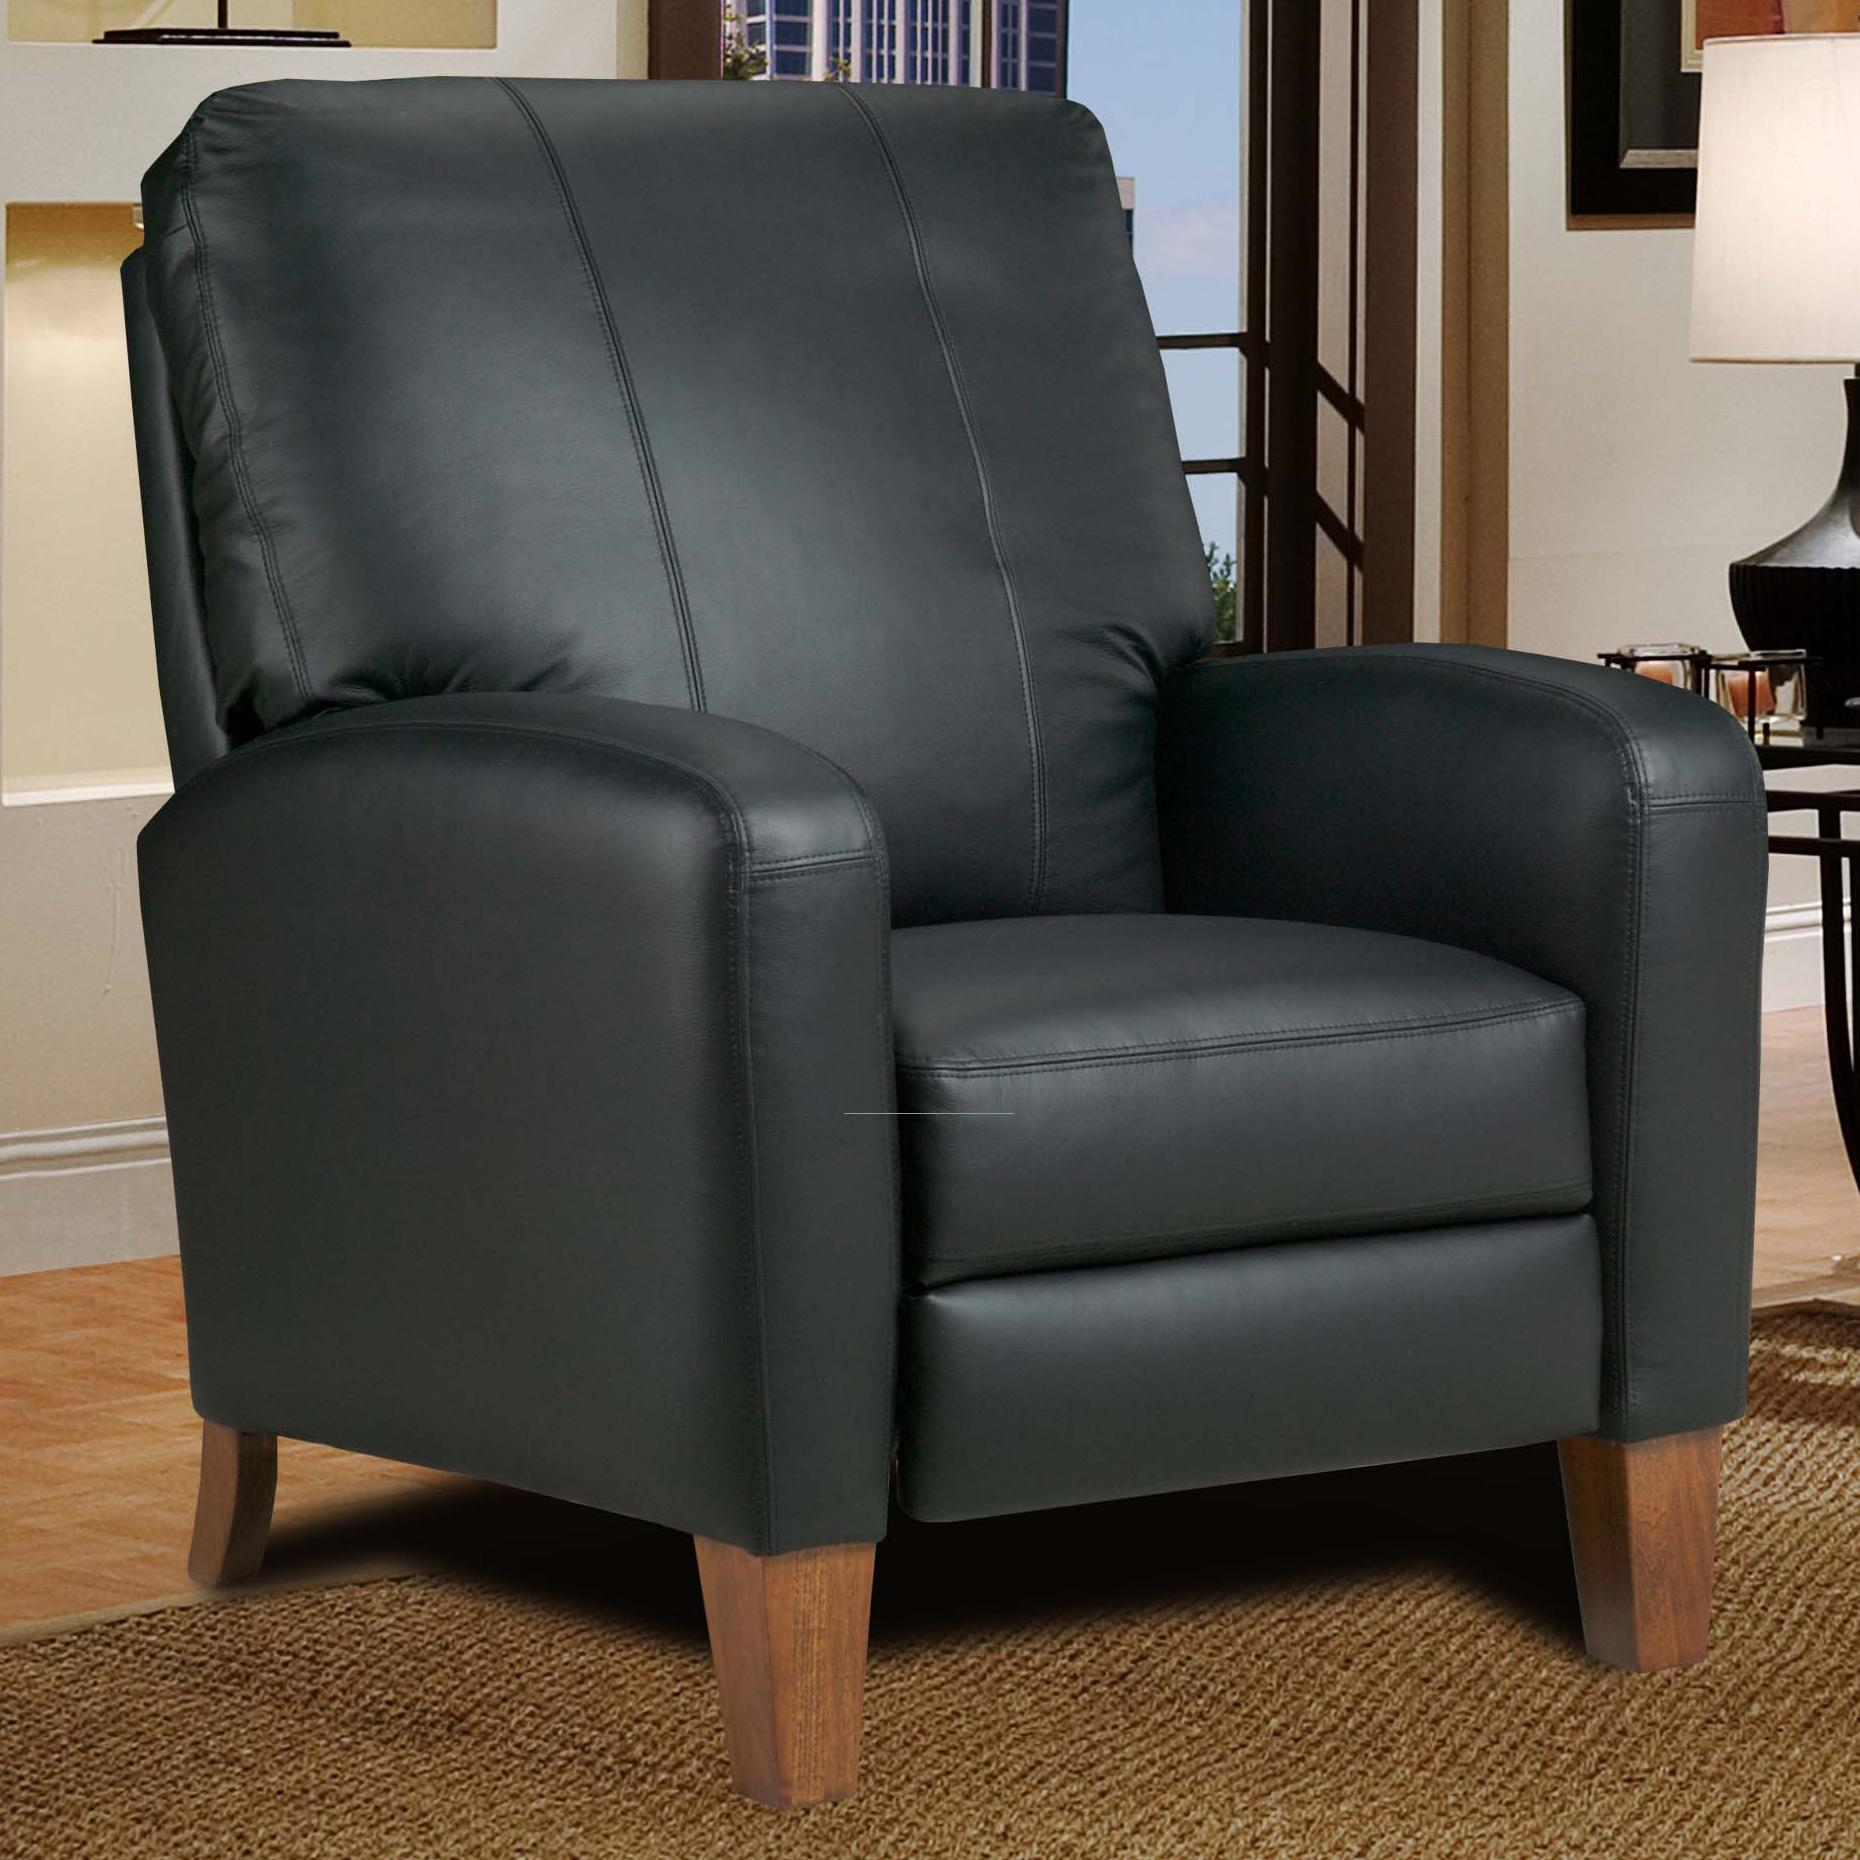 Southern Motion HiLeg High Leg Recliner with Track Arms